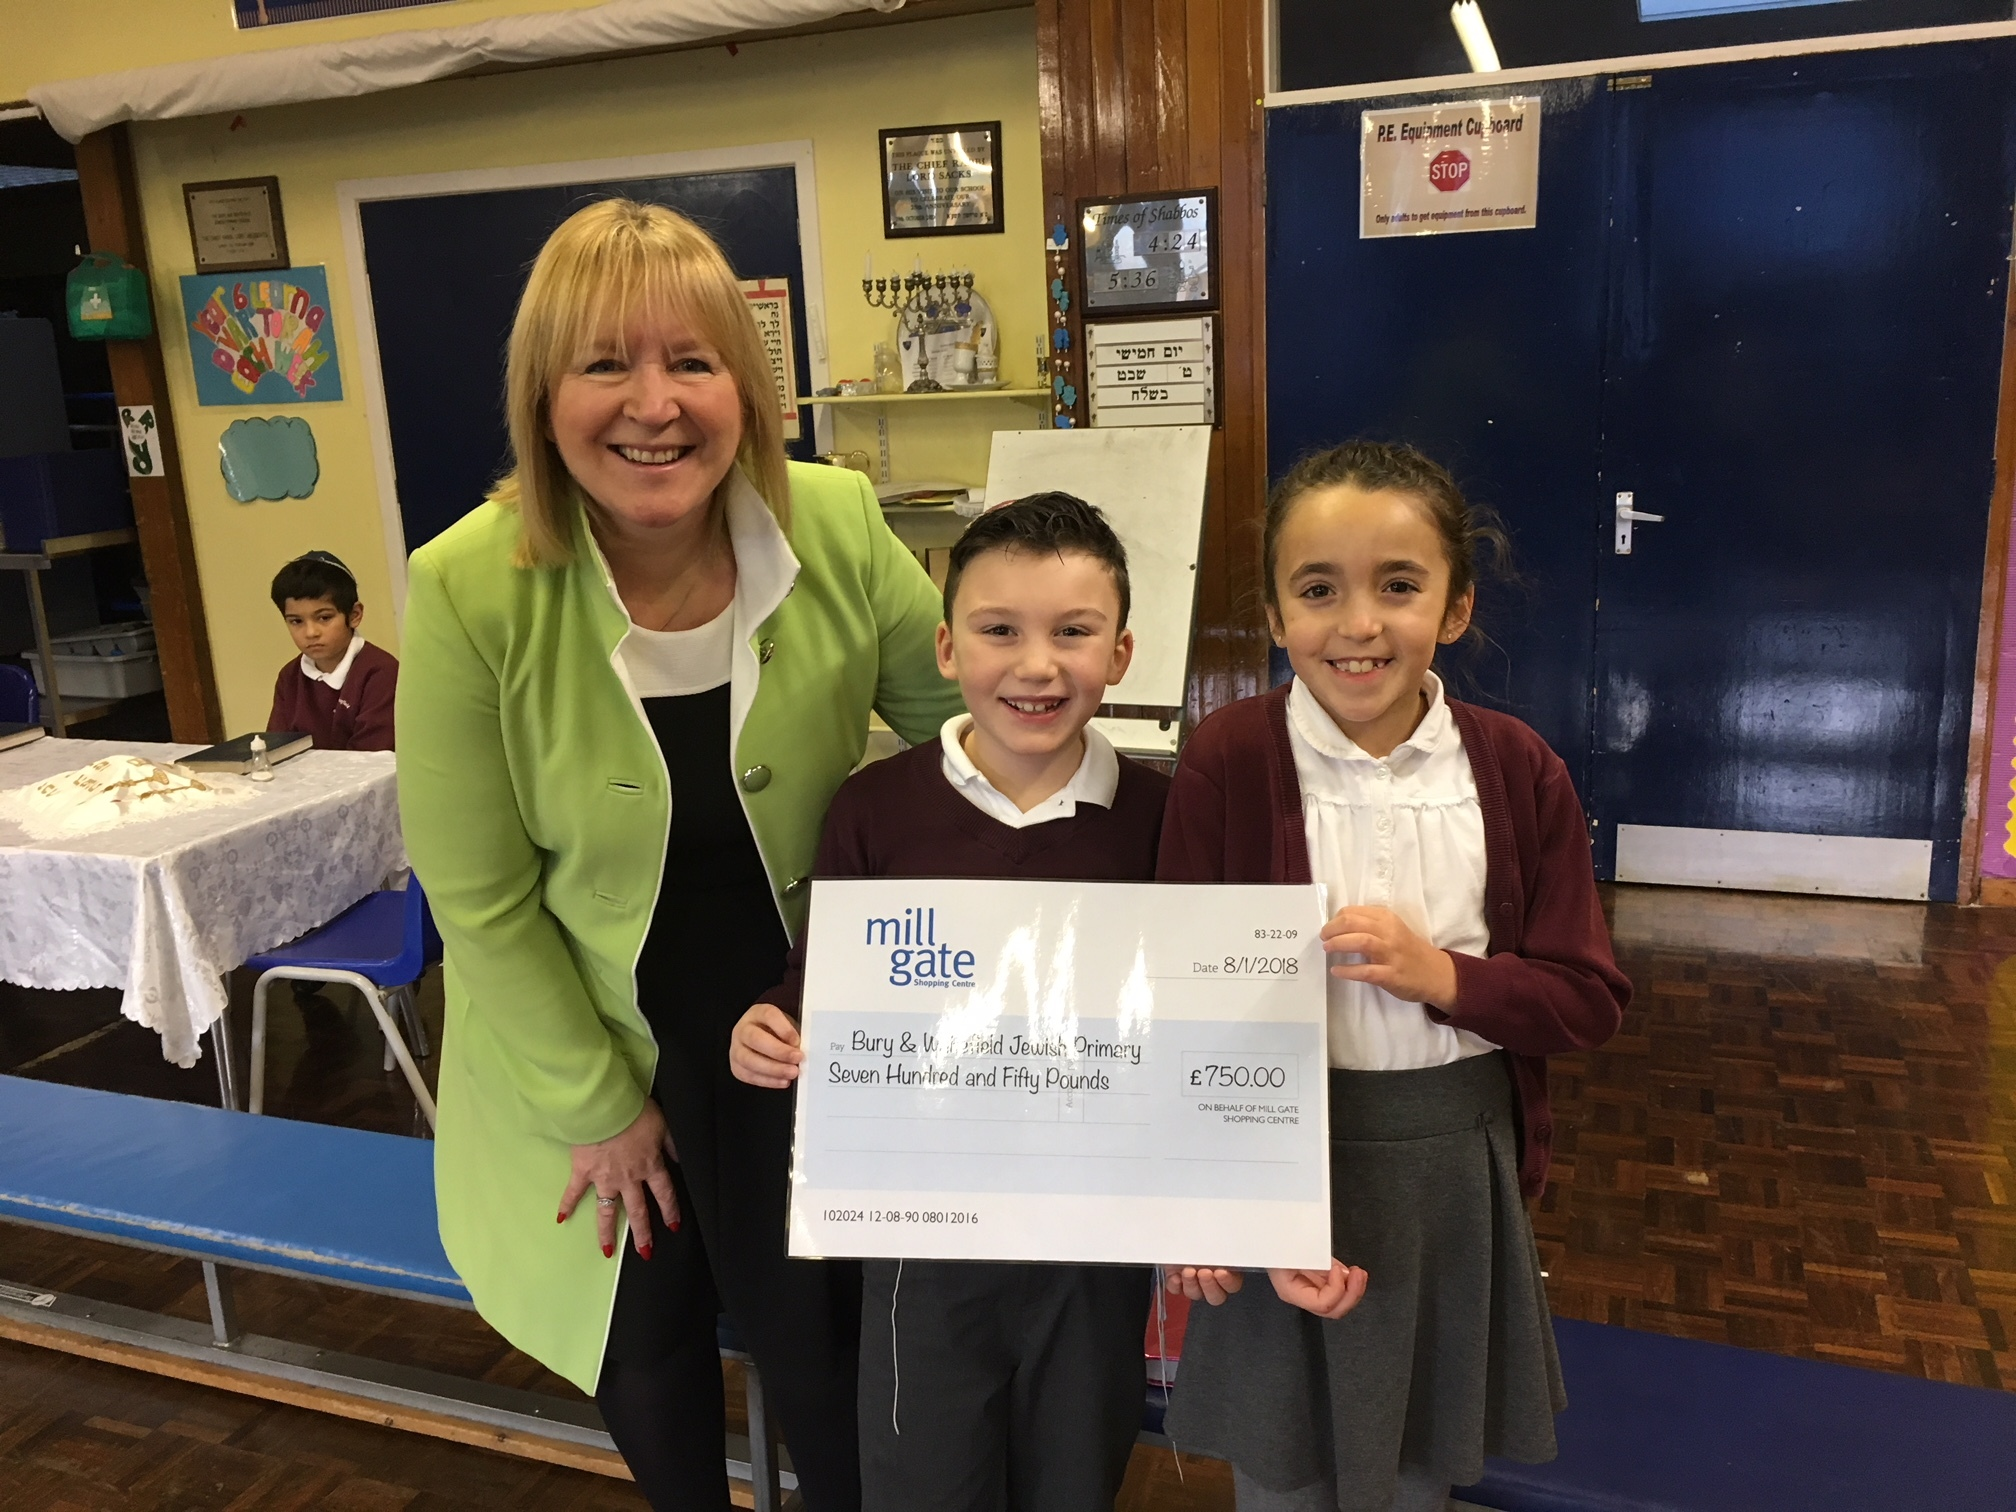 WIN: Rafi Radnor and Alessandra Guerini accept the cheque on behalf of the school from Mill Gate's manager Marie Gribben